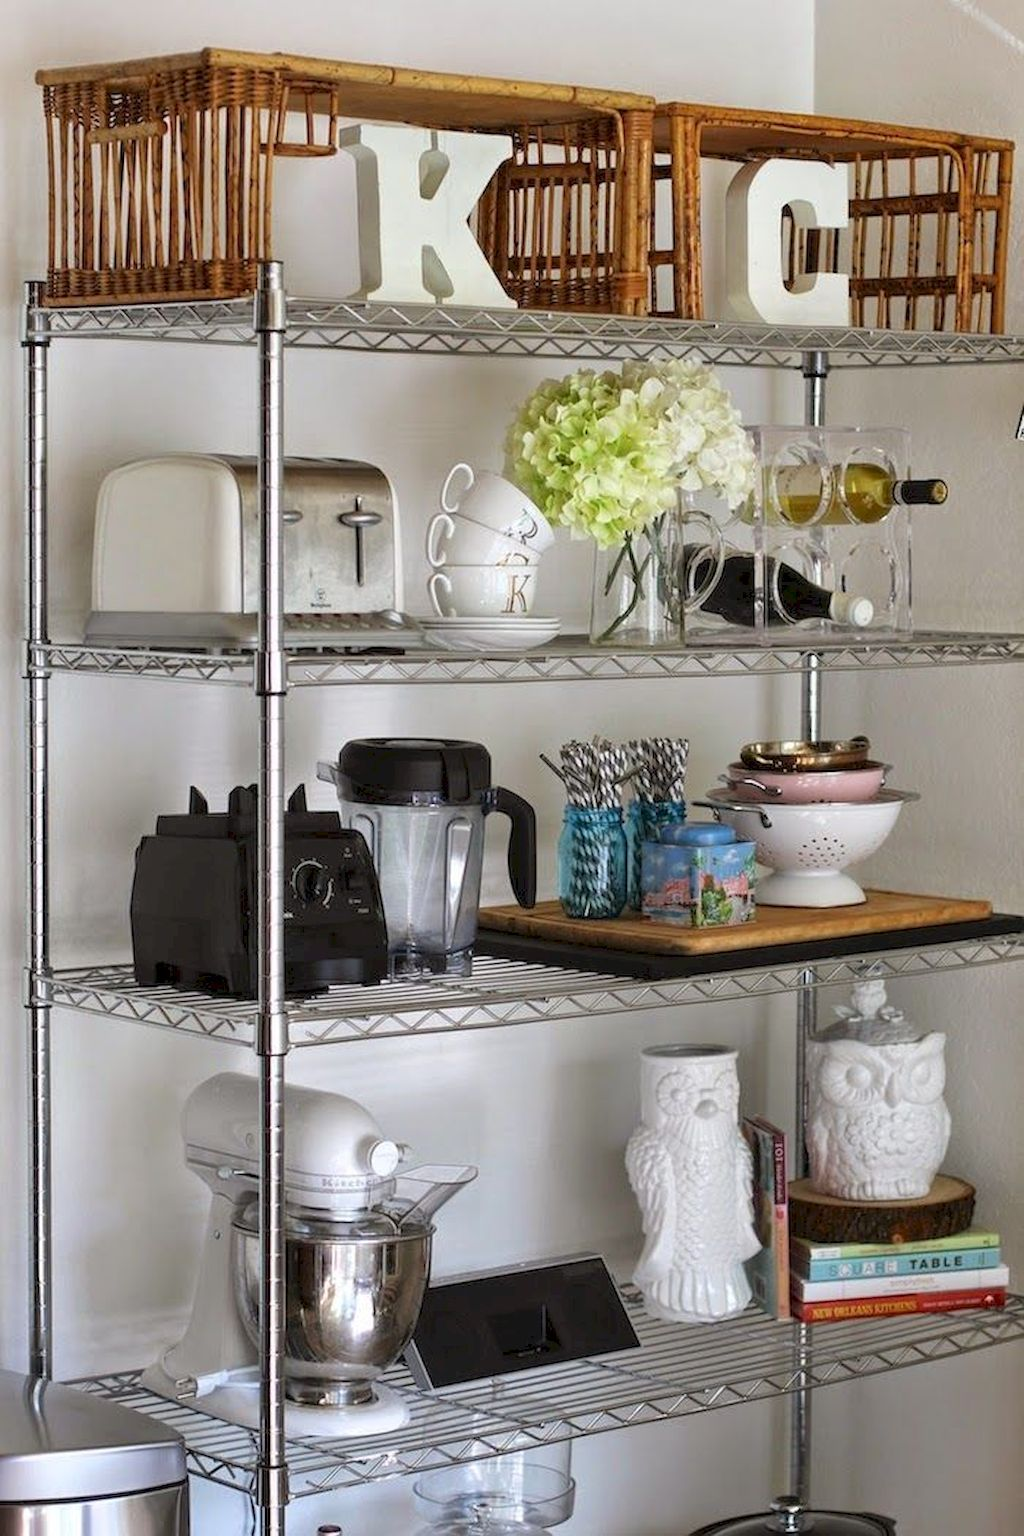 80 Rustic Kitchen Decor with Open Shelves Ideas Rustic